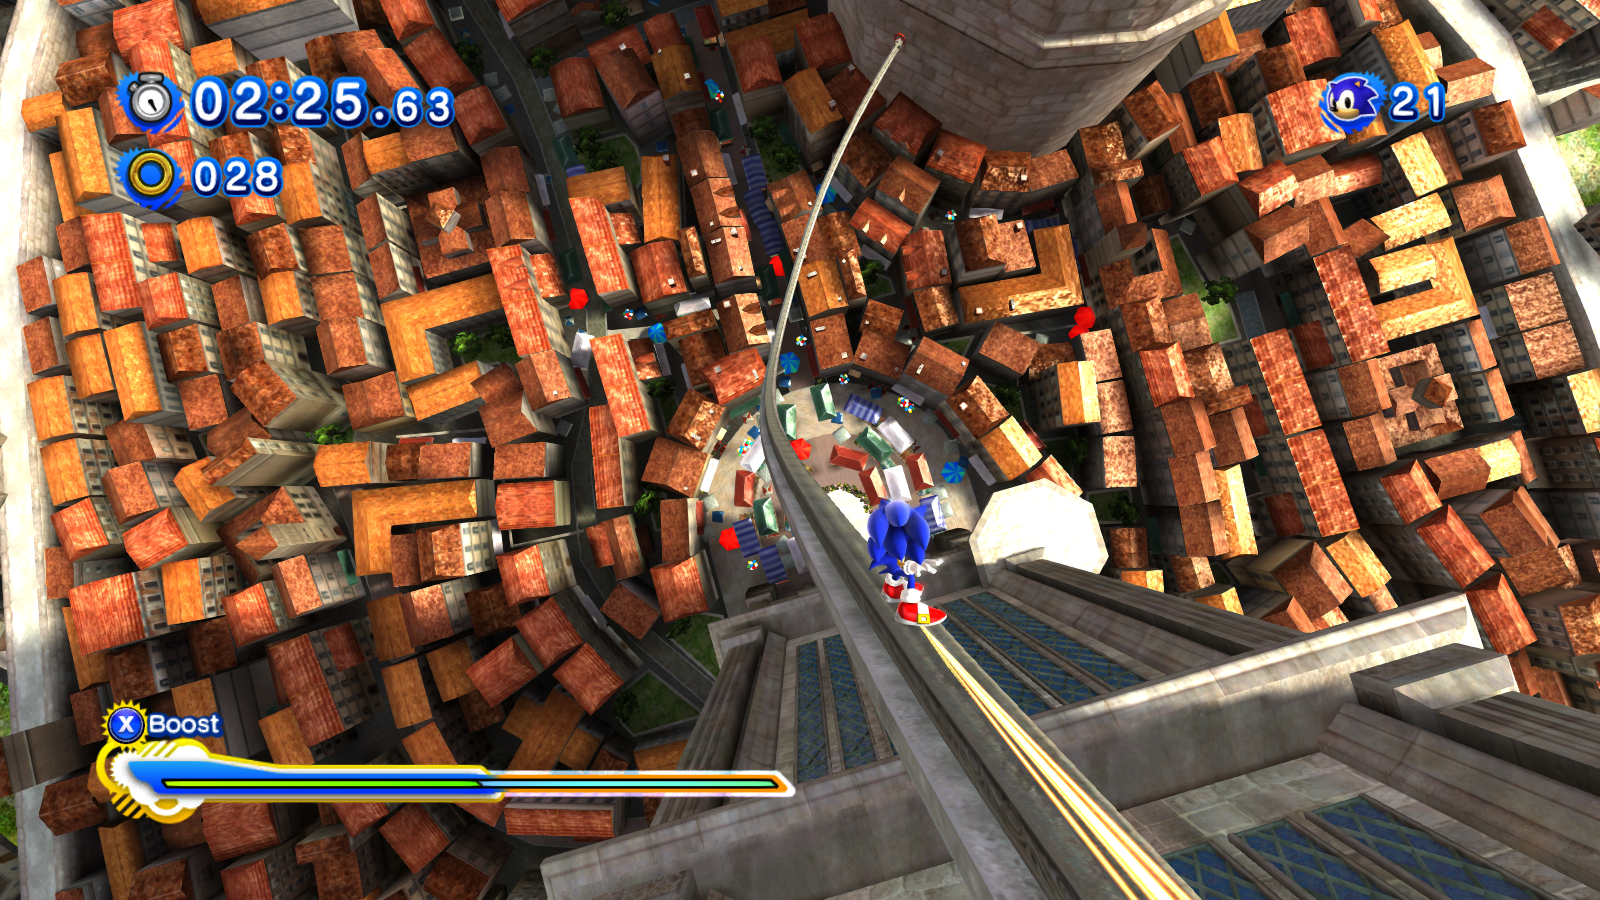 sonicgenerations2011-m7kdh.png